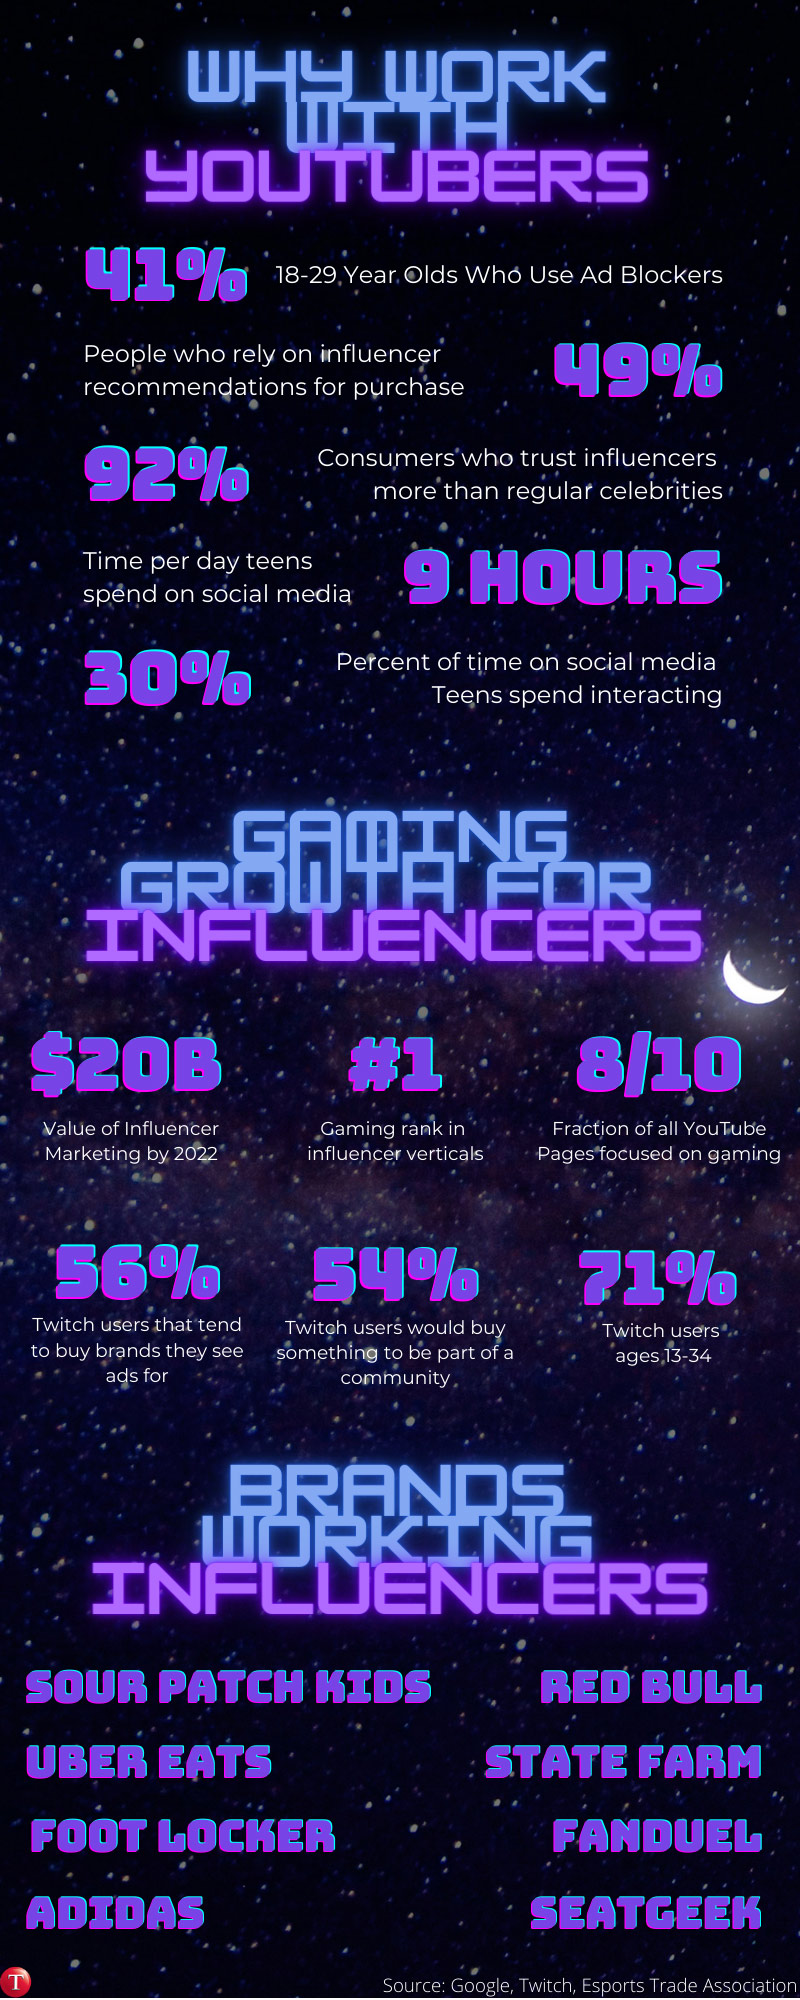 Why Work with Influencers